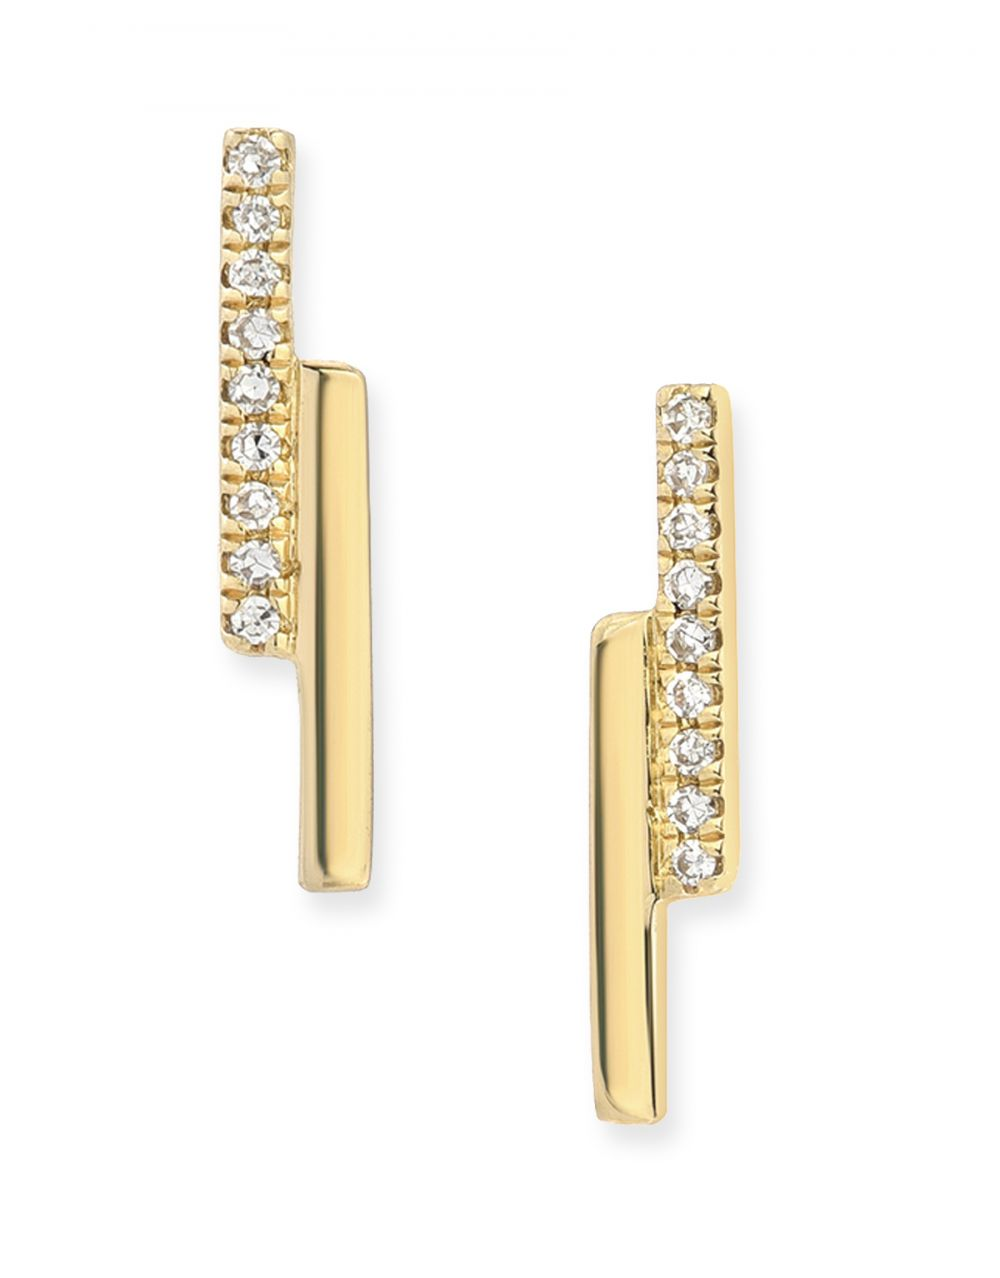 Pave & Gold Bar Stud<br /><i><small>14K Yellow Gold with White Diamonds</small></i><br />